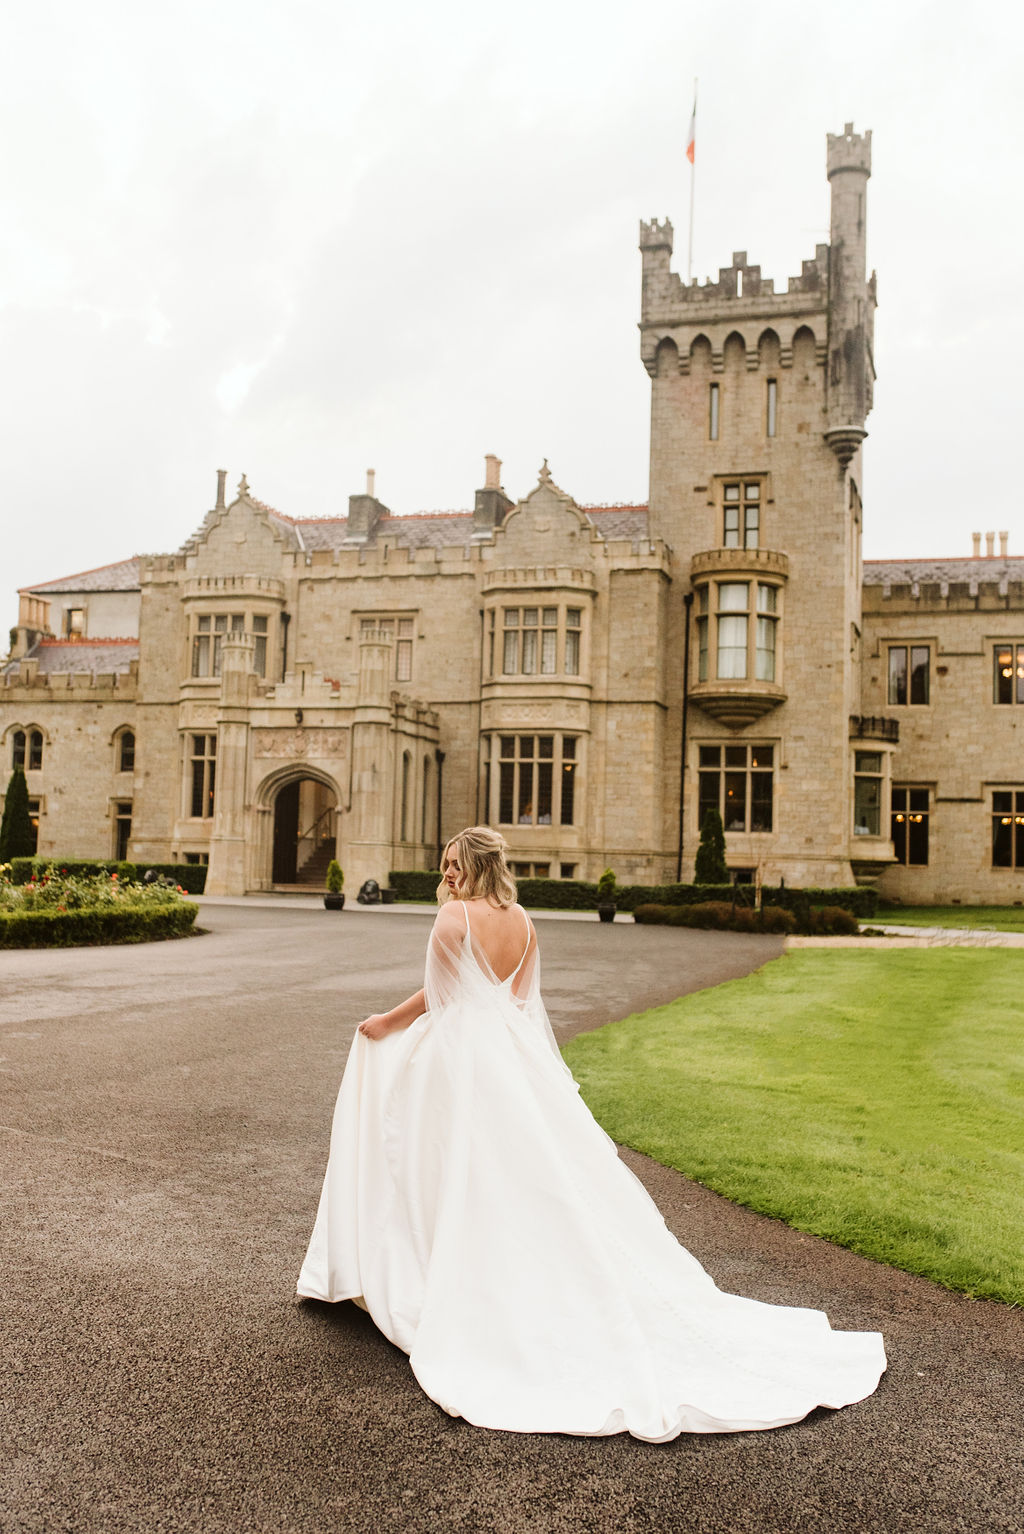 Bride wearing a mikado ballgown wedding dress with straps and a tulle cape in front of Lough Eske castle in Donegal, Ireland.